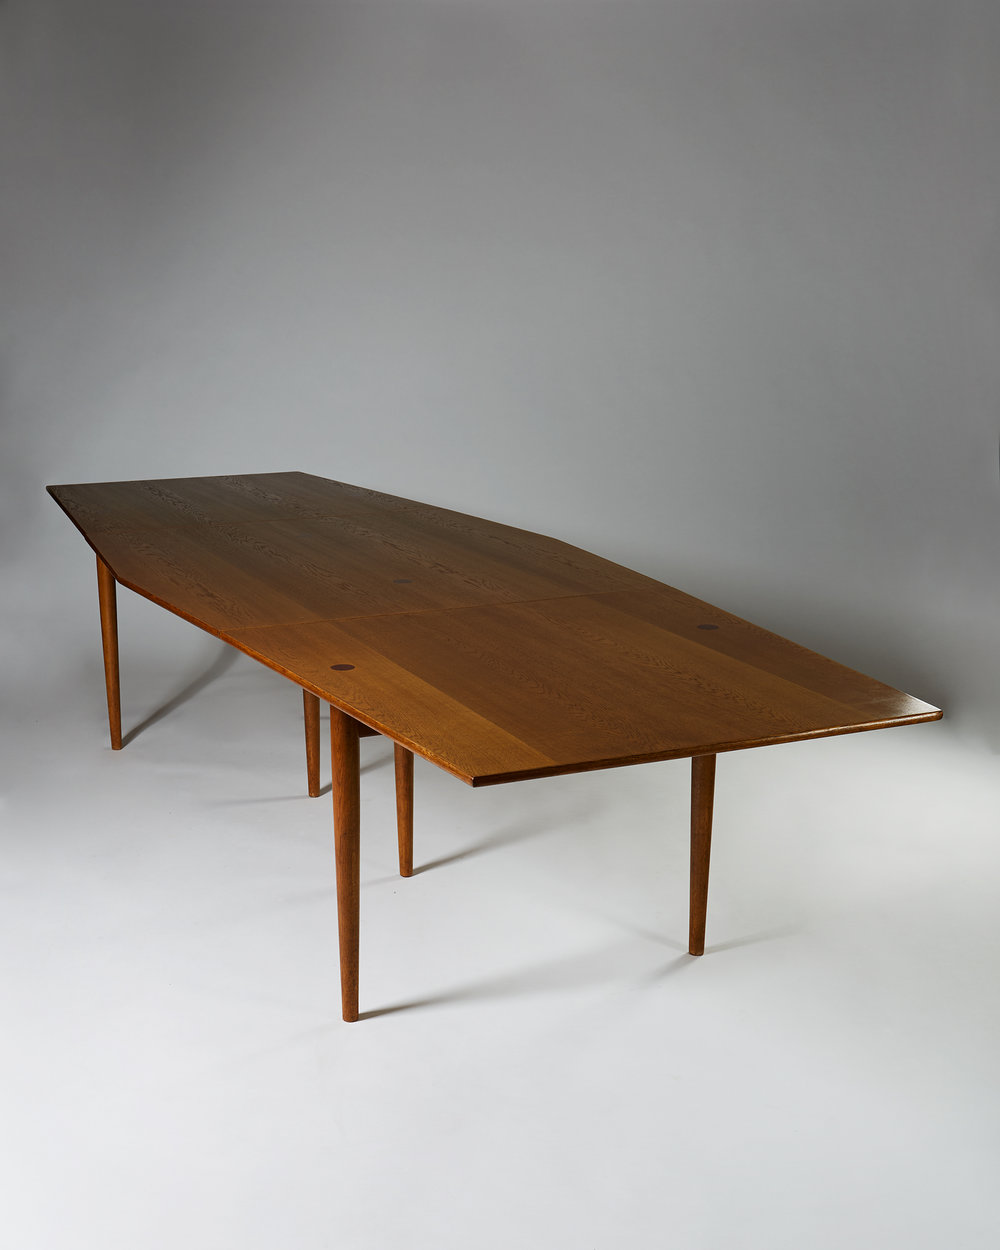 Edvard and Tove Kindt-Larsen Dining table  Denmark. 1960's Oak and rosewood details. 348 x 120 x 74 cm